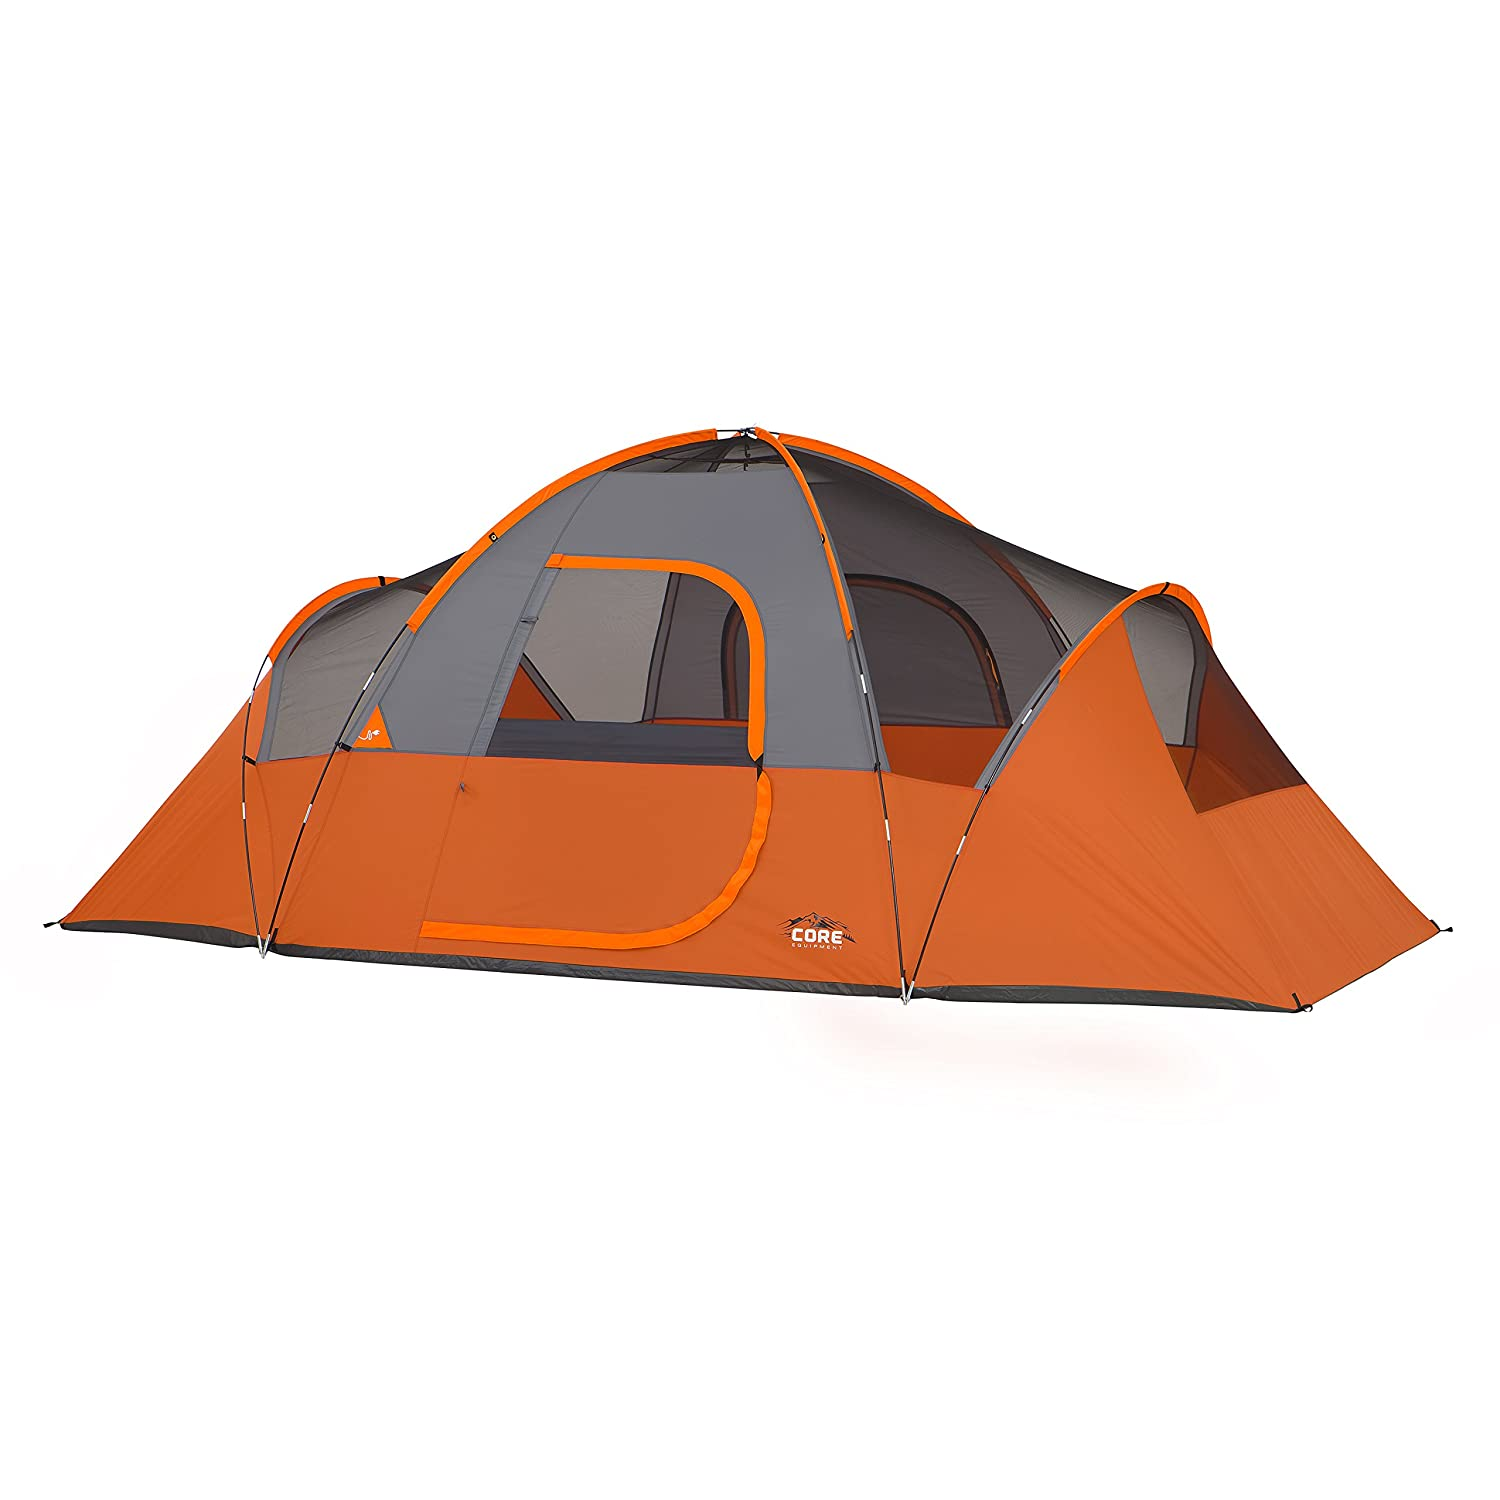 Amazon.com  CORE 9 Person Extended Dome Tent - 16u0027 x 9u0027  Sports u0026 Outdoors  sc 1 st  Amazon.com : ozark trail tents 4 person - memphite.com